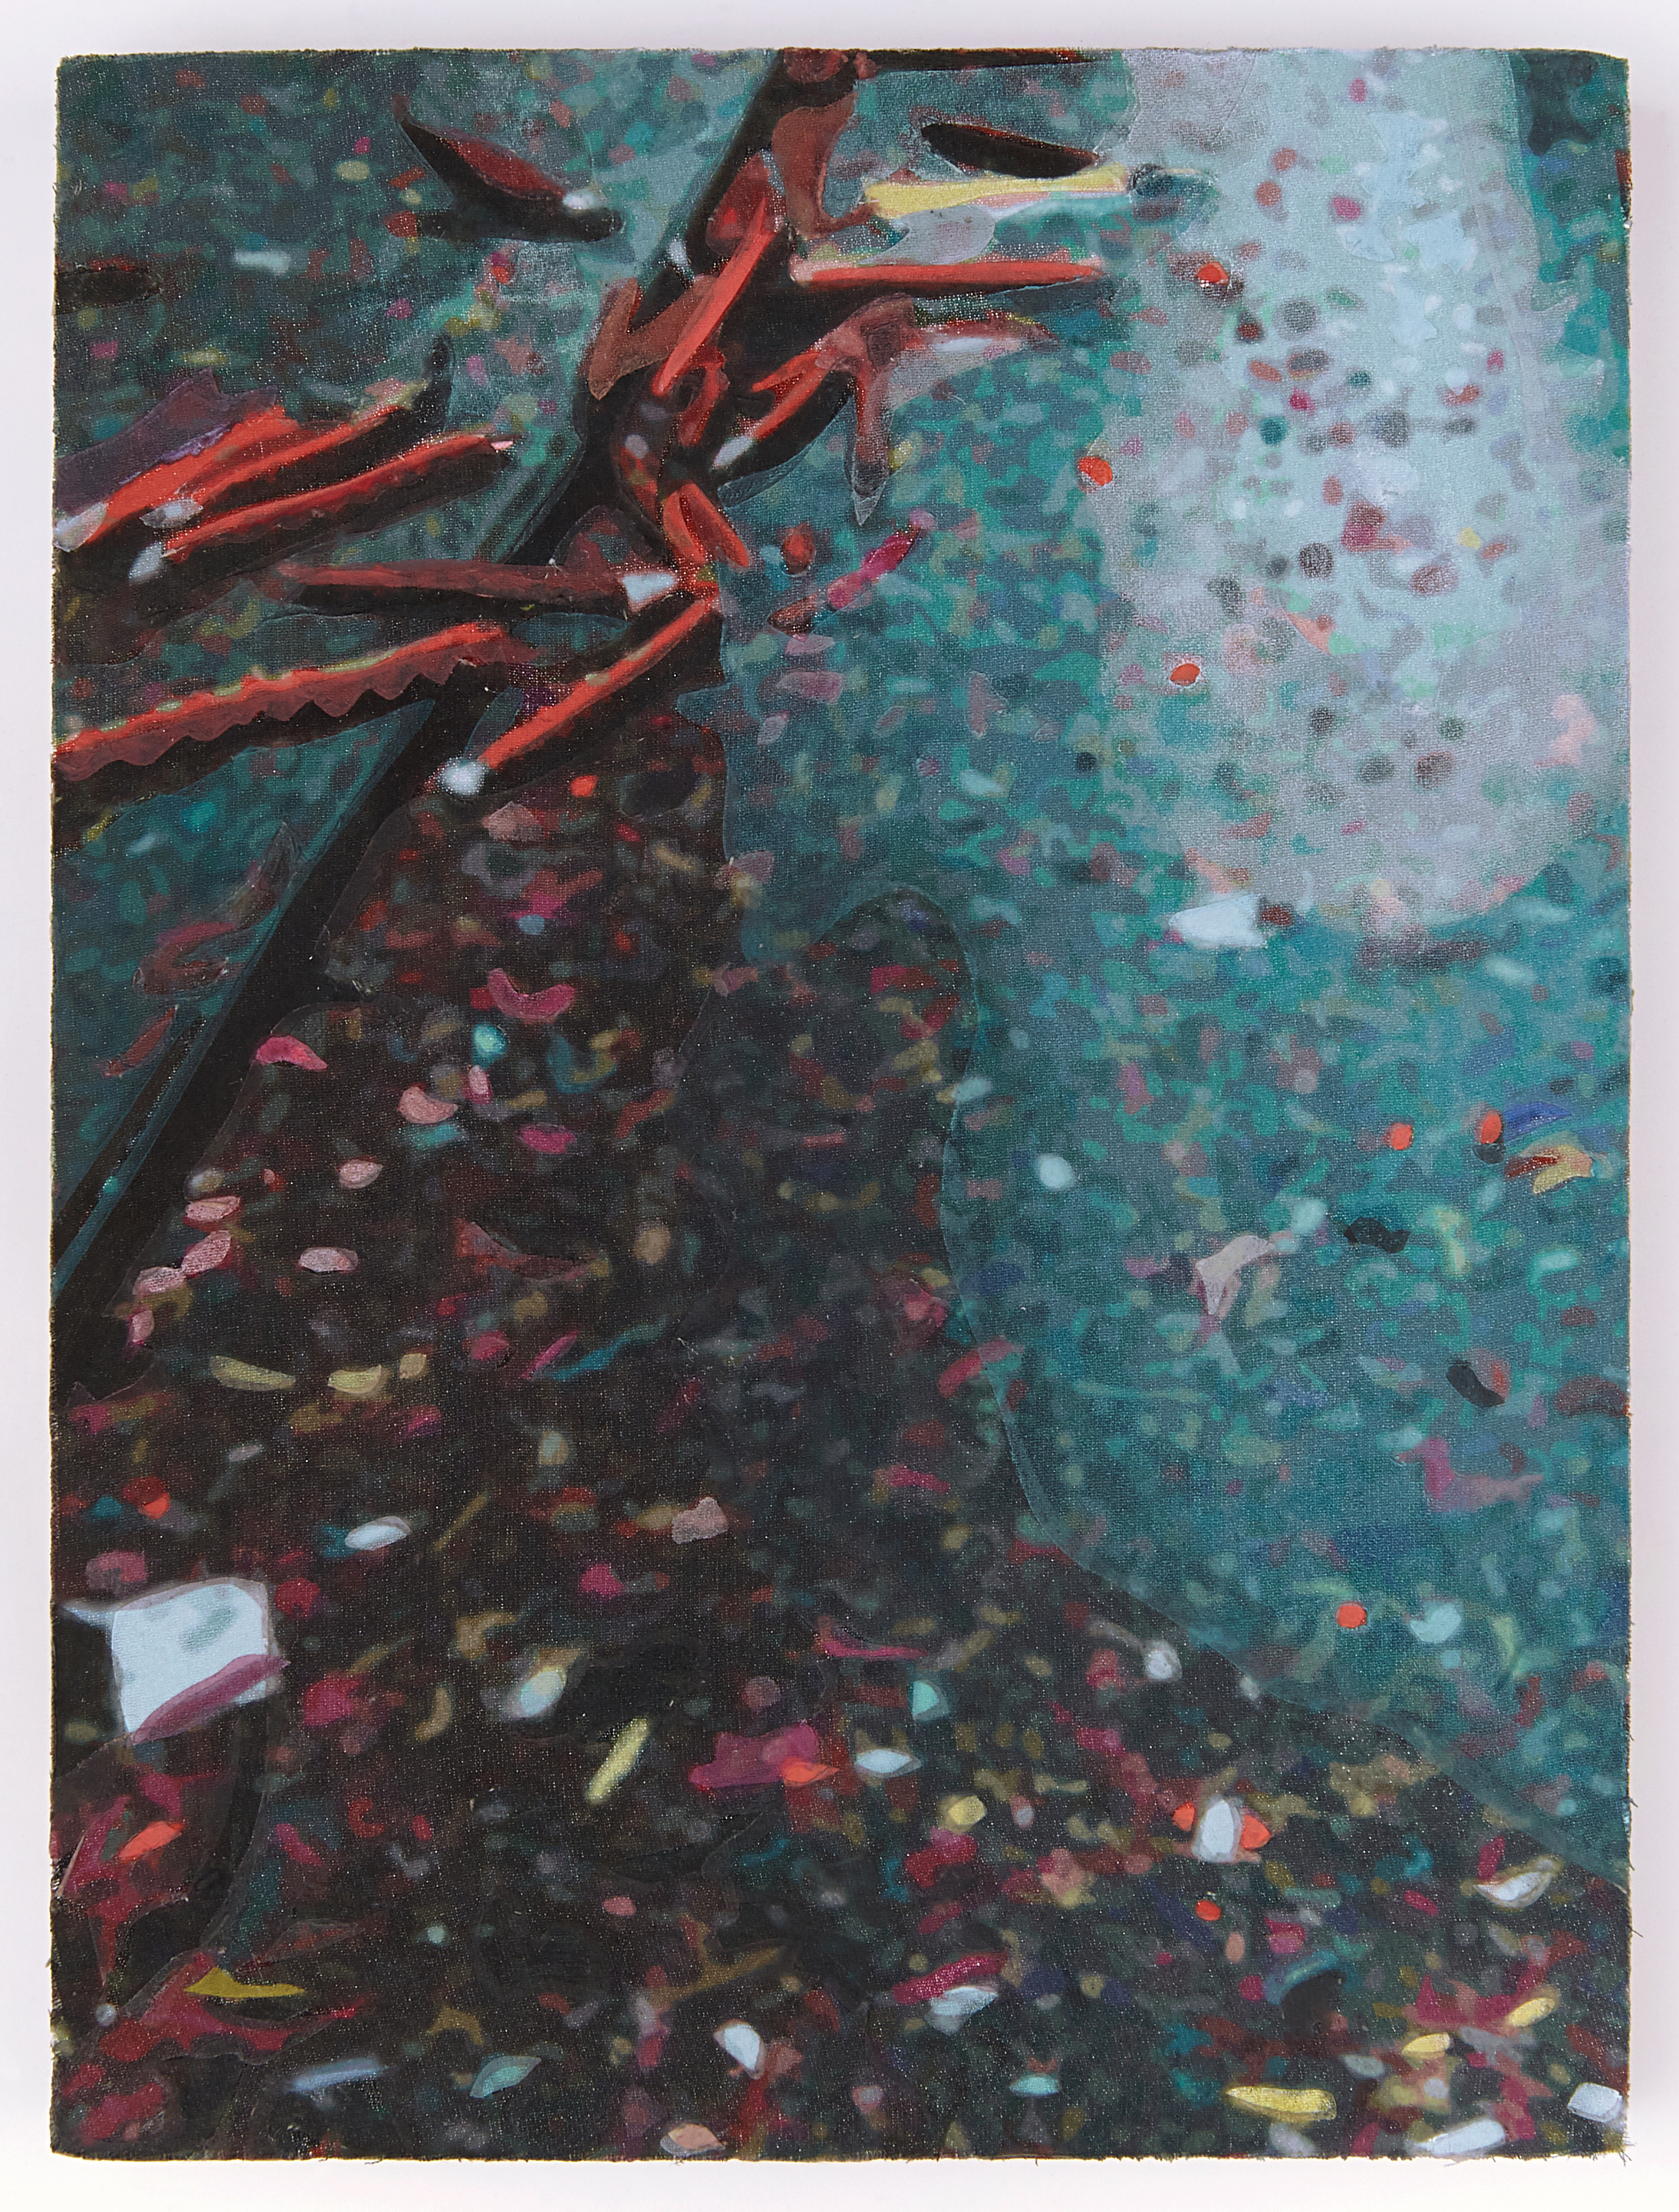 Chinatown Confetti , 8 x 6 inches, acrylic on pigment-printed fabric panel, 2019.  Photography by    Theo Coulombe